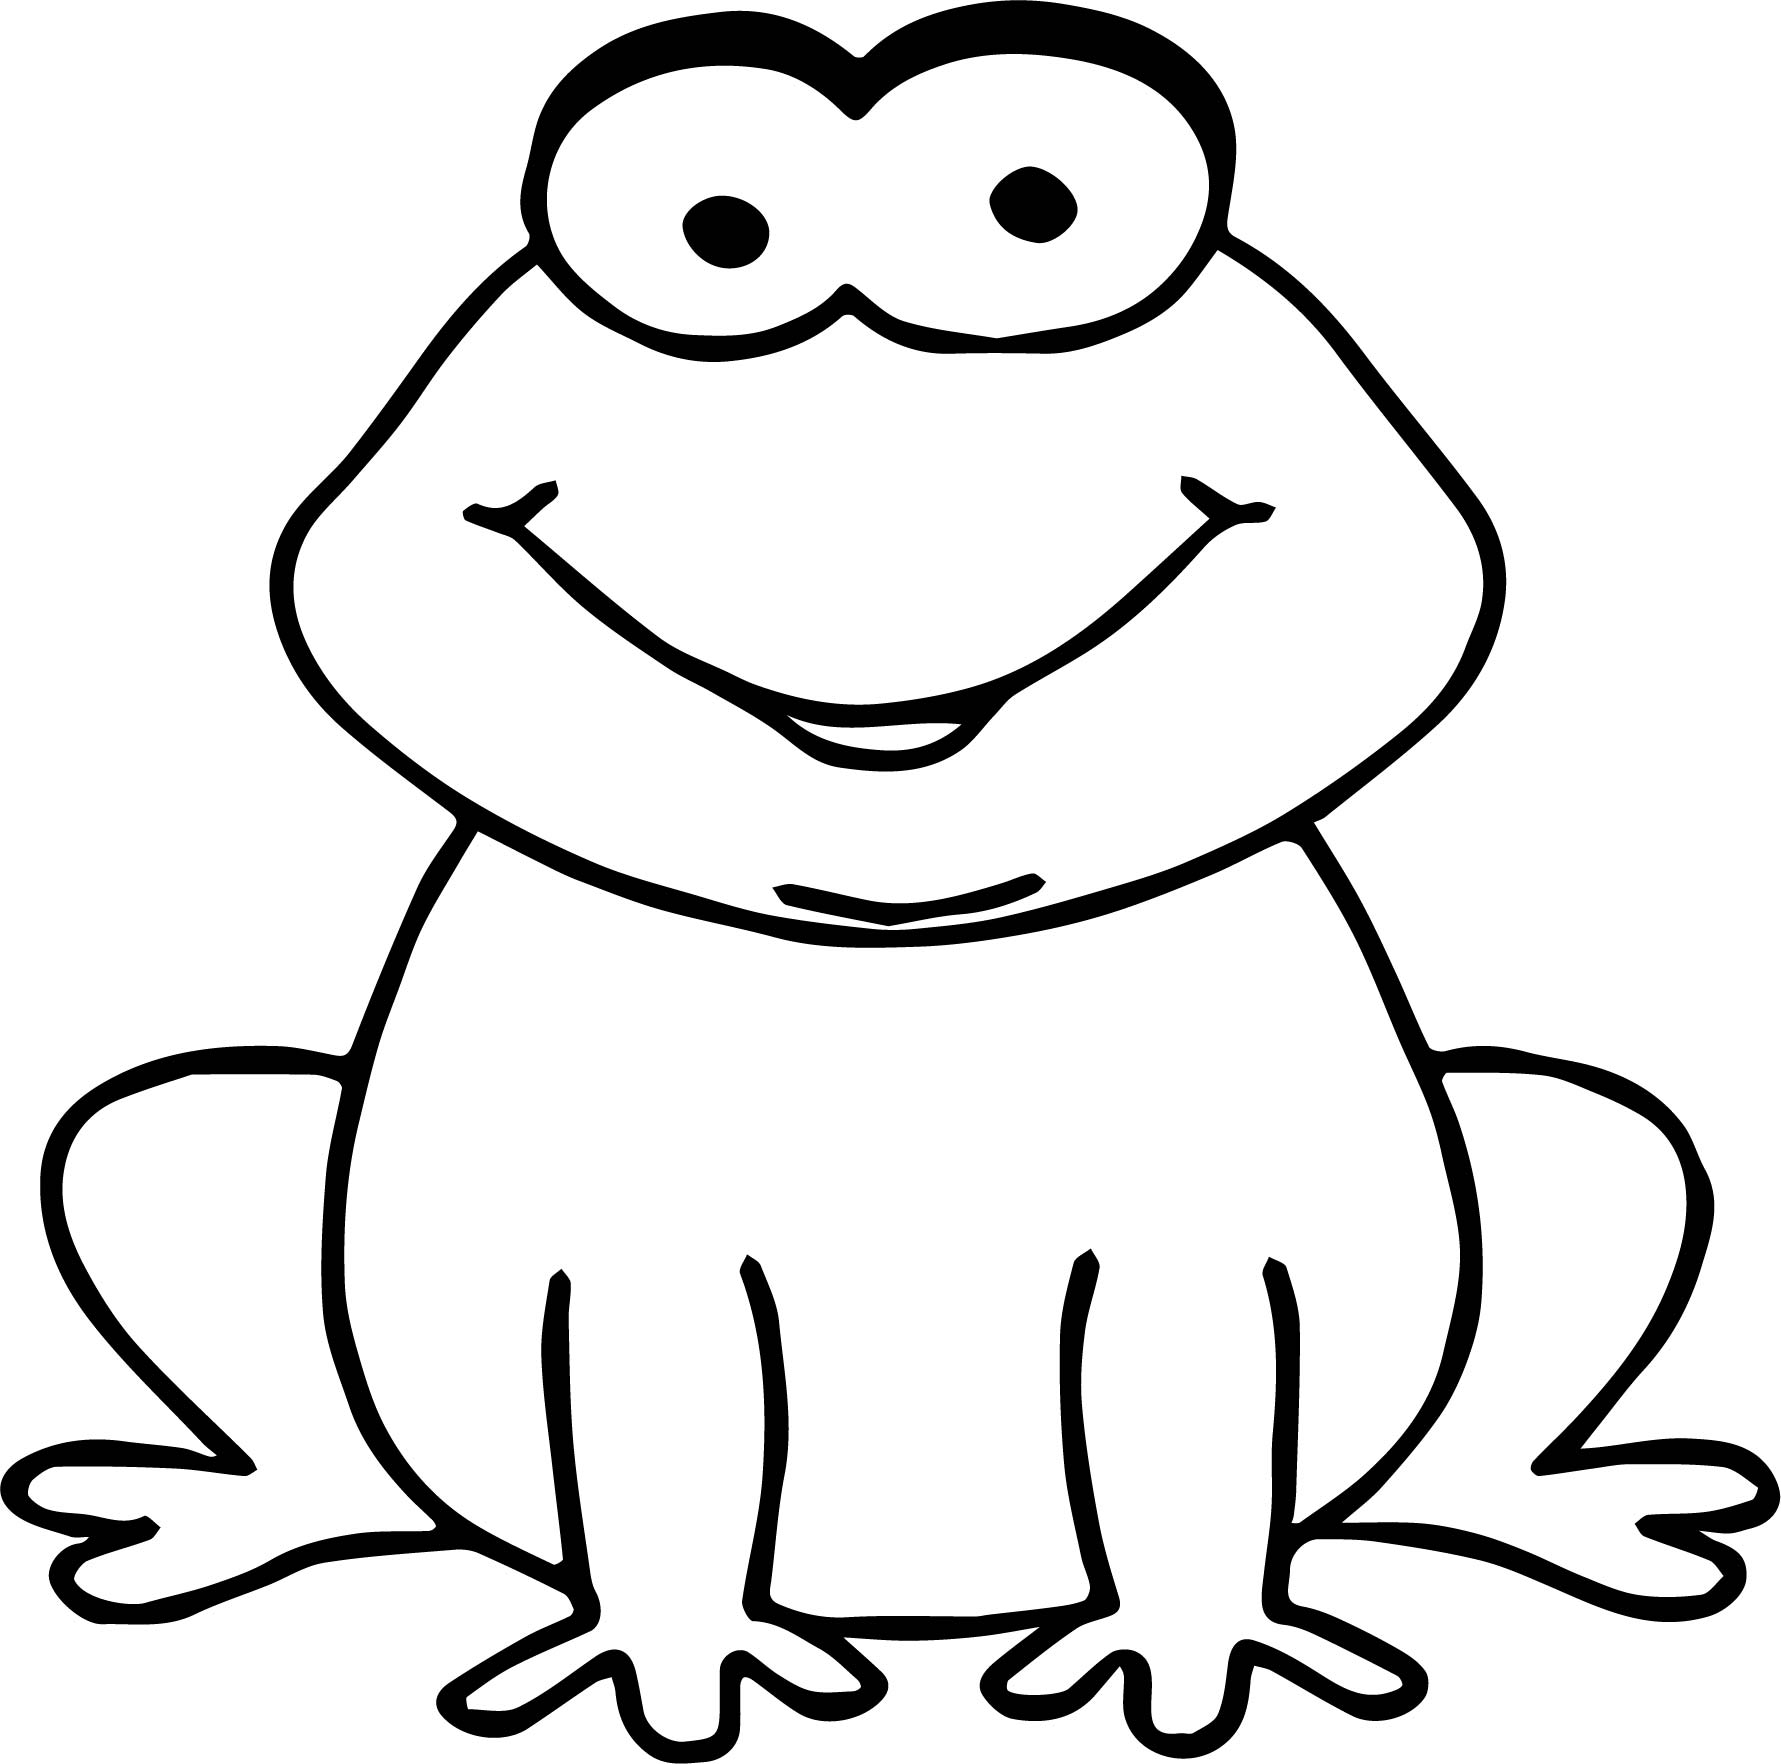 Frog Coloring Page 063